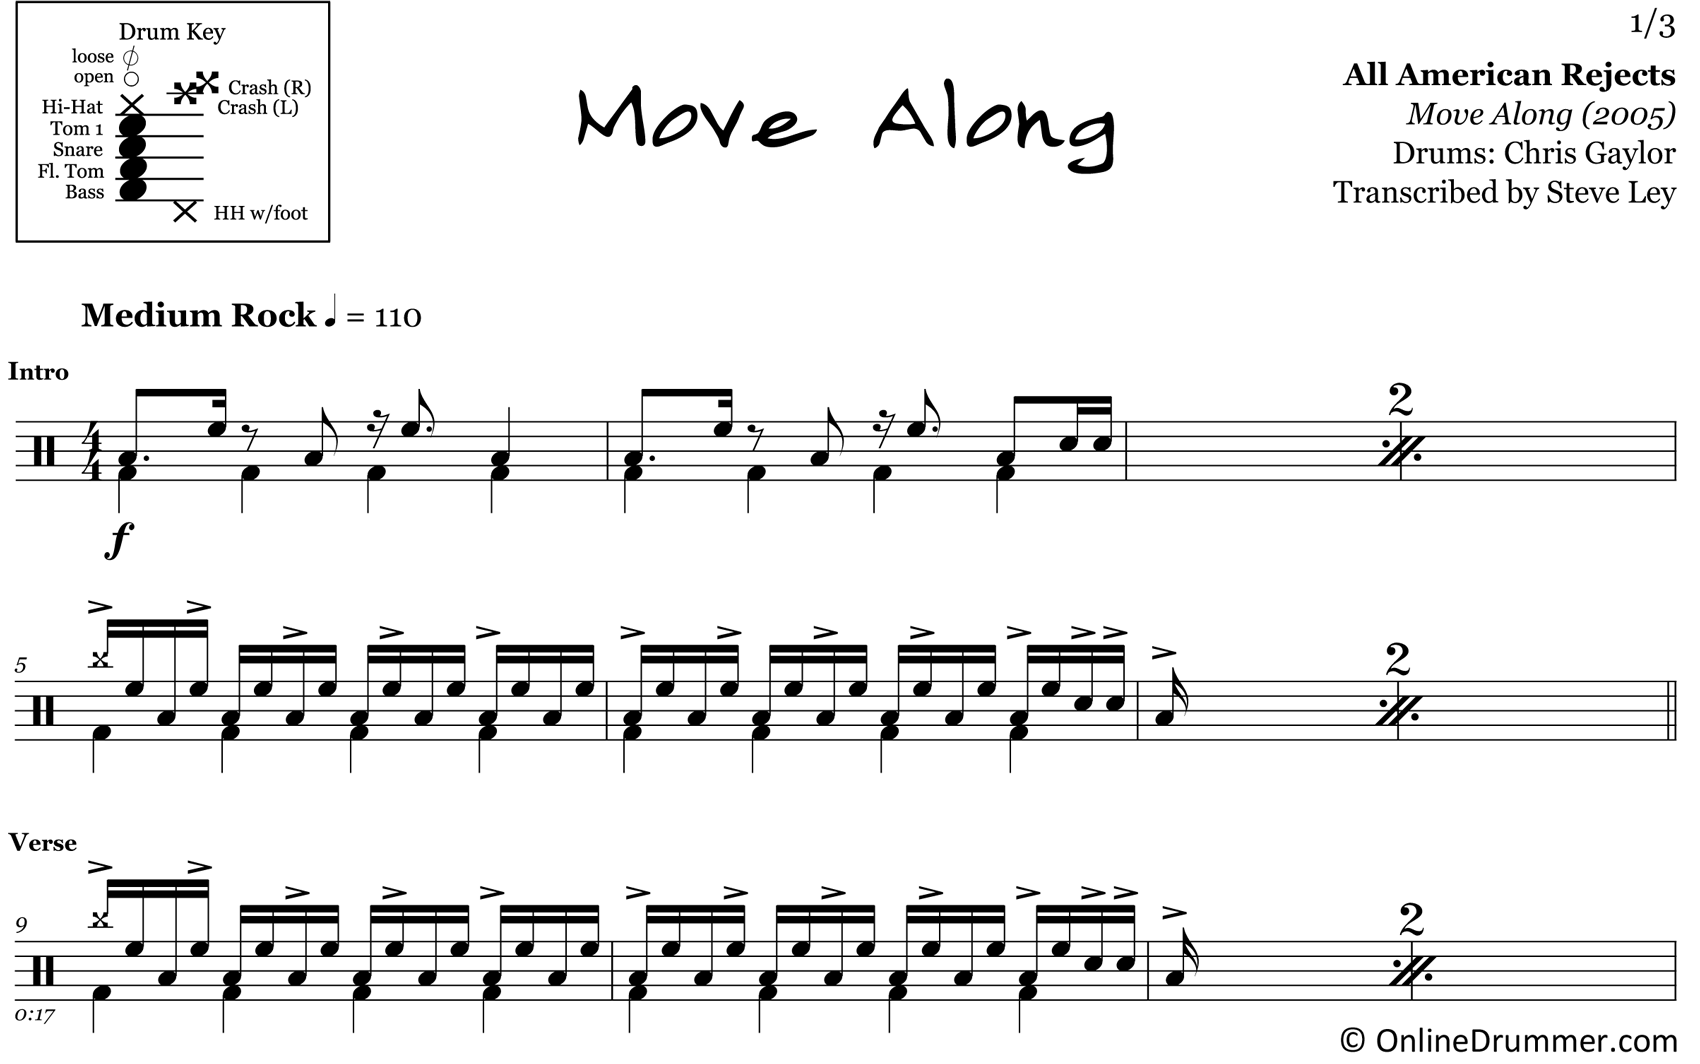 Move Along - All American Rejects - Drum Sheet Music